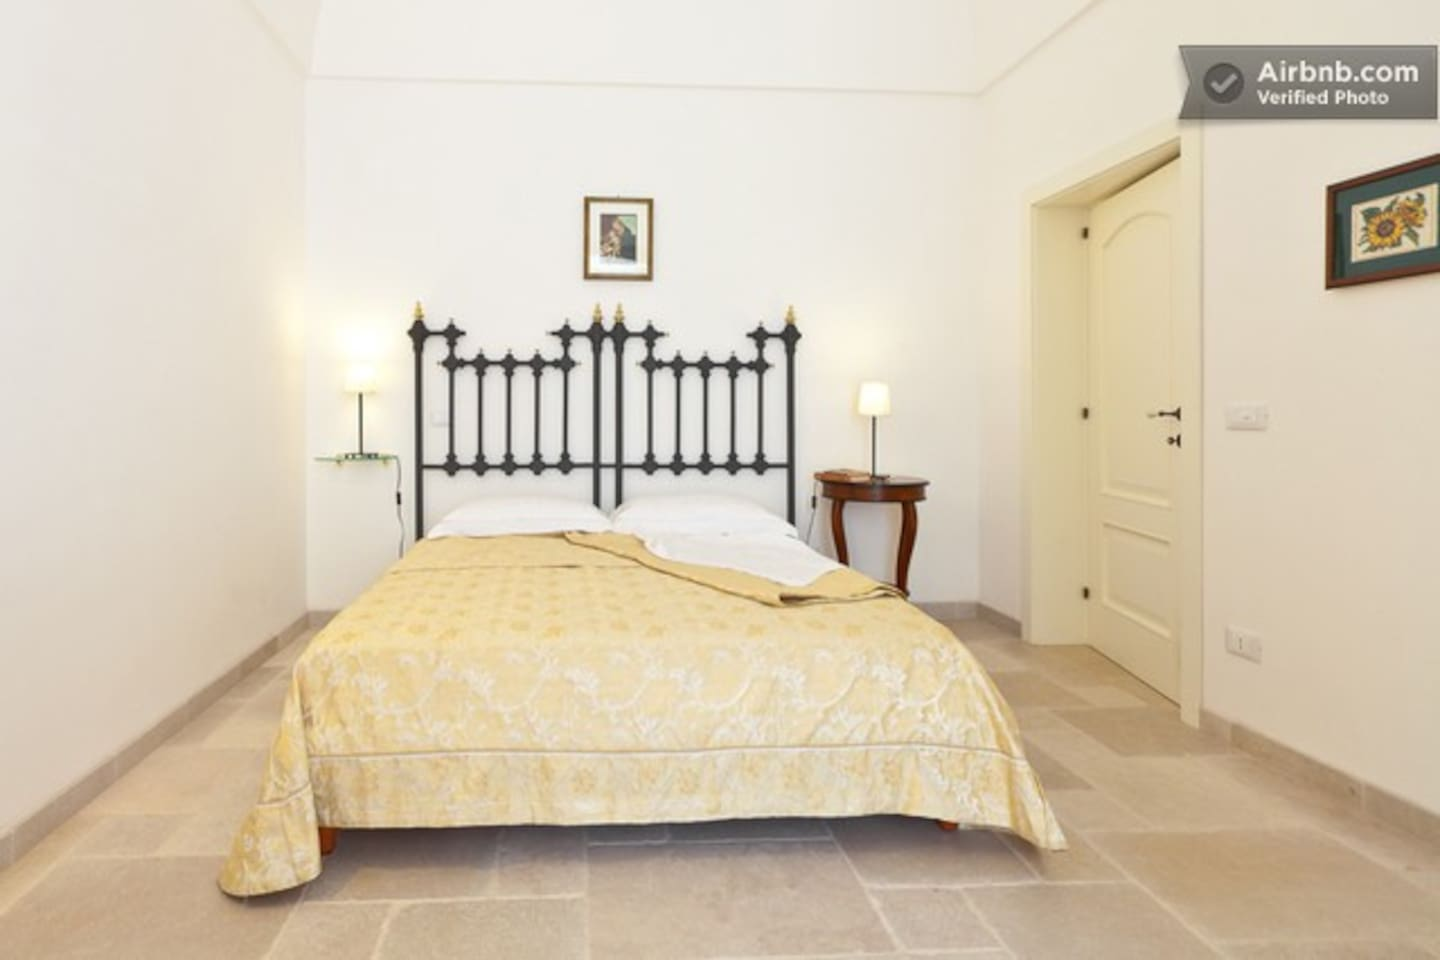 The double bed - Il letto matrimoniale